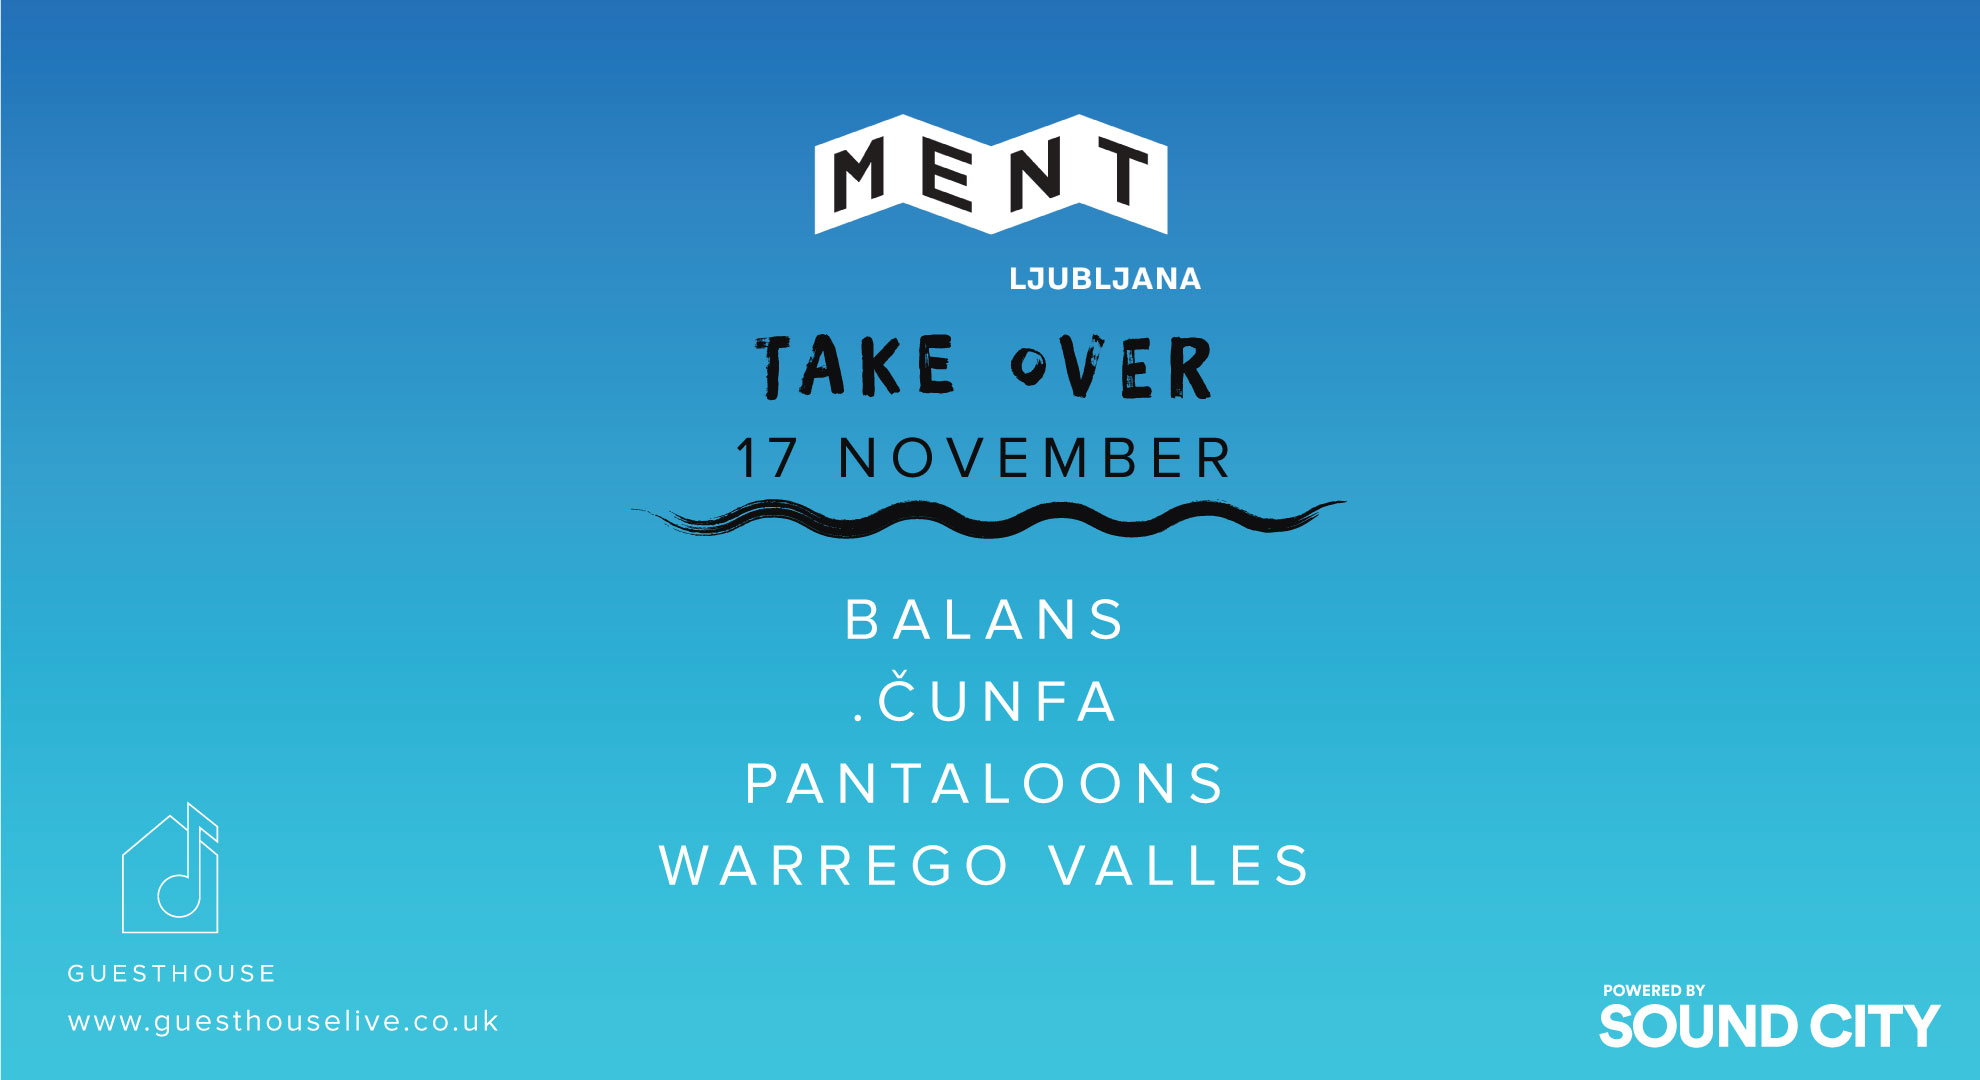 MENT take over poster for Liverpool Sound City